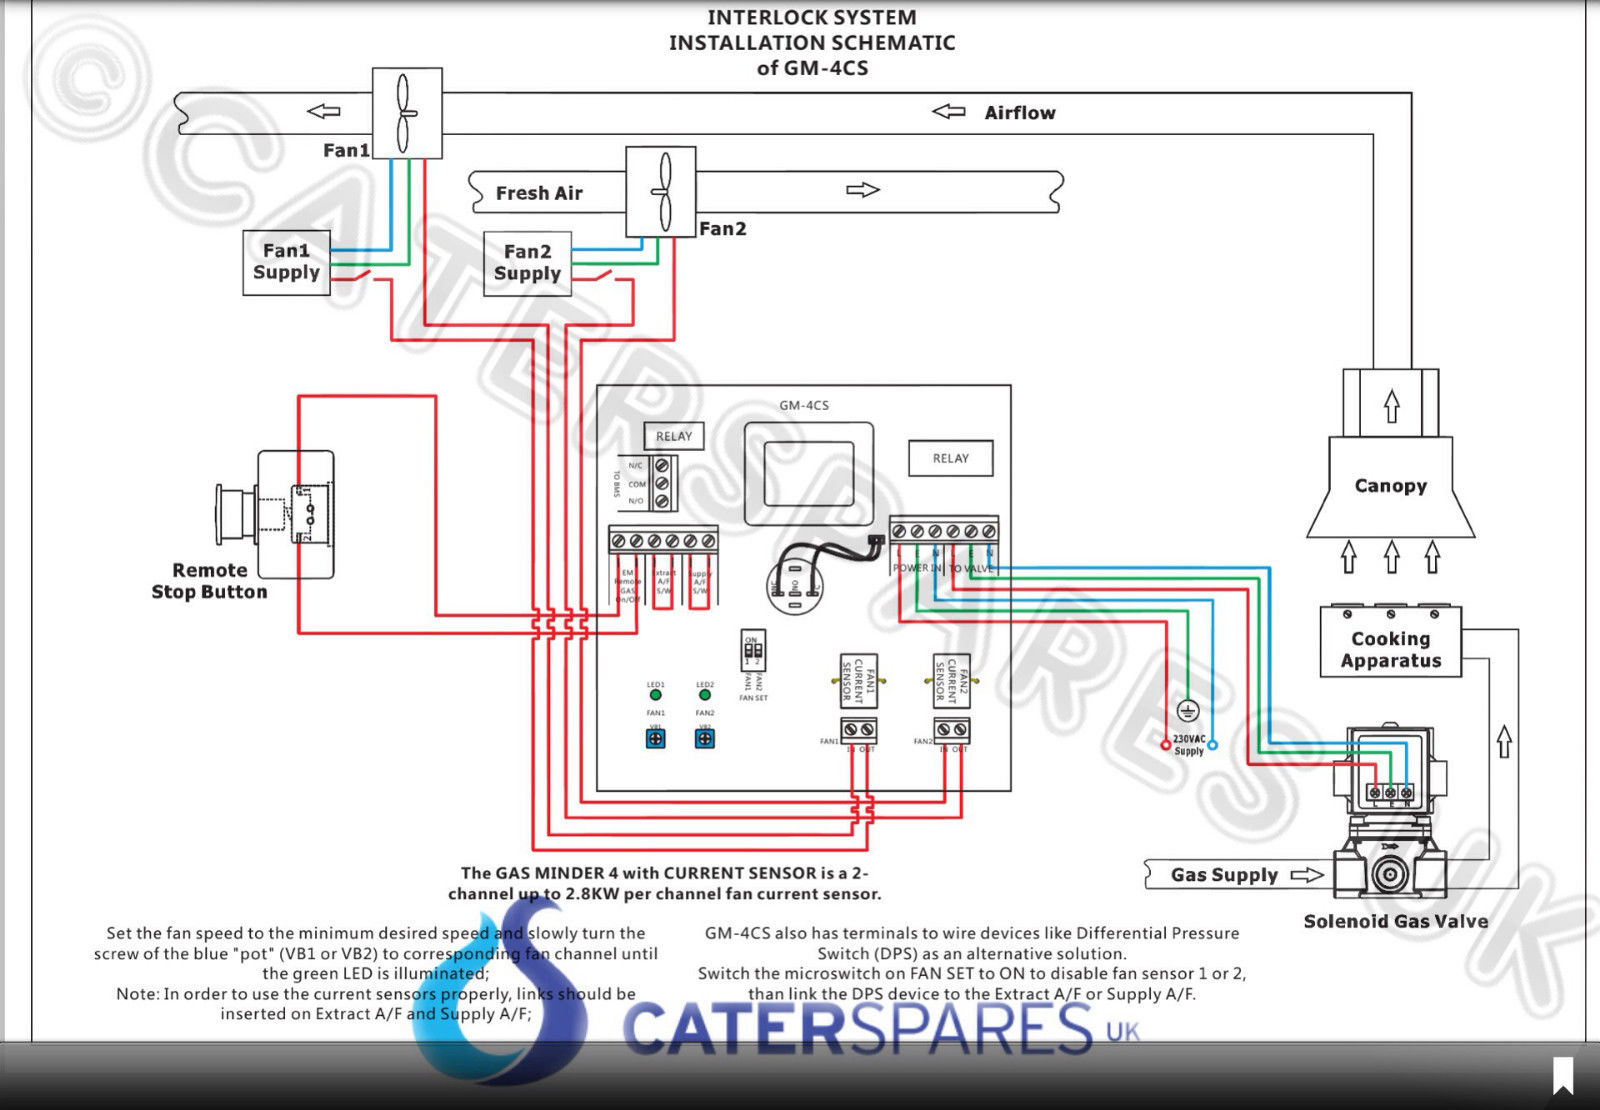 Commercial Gas Interlock System Control Panel Current